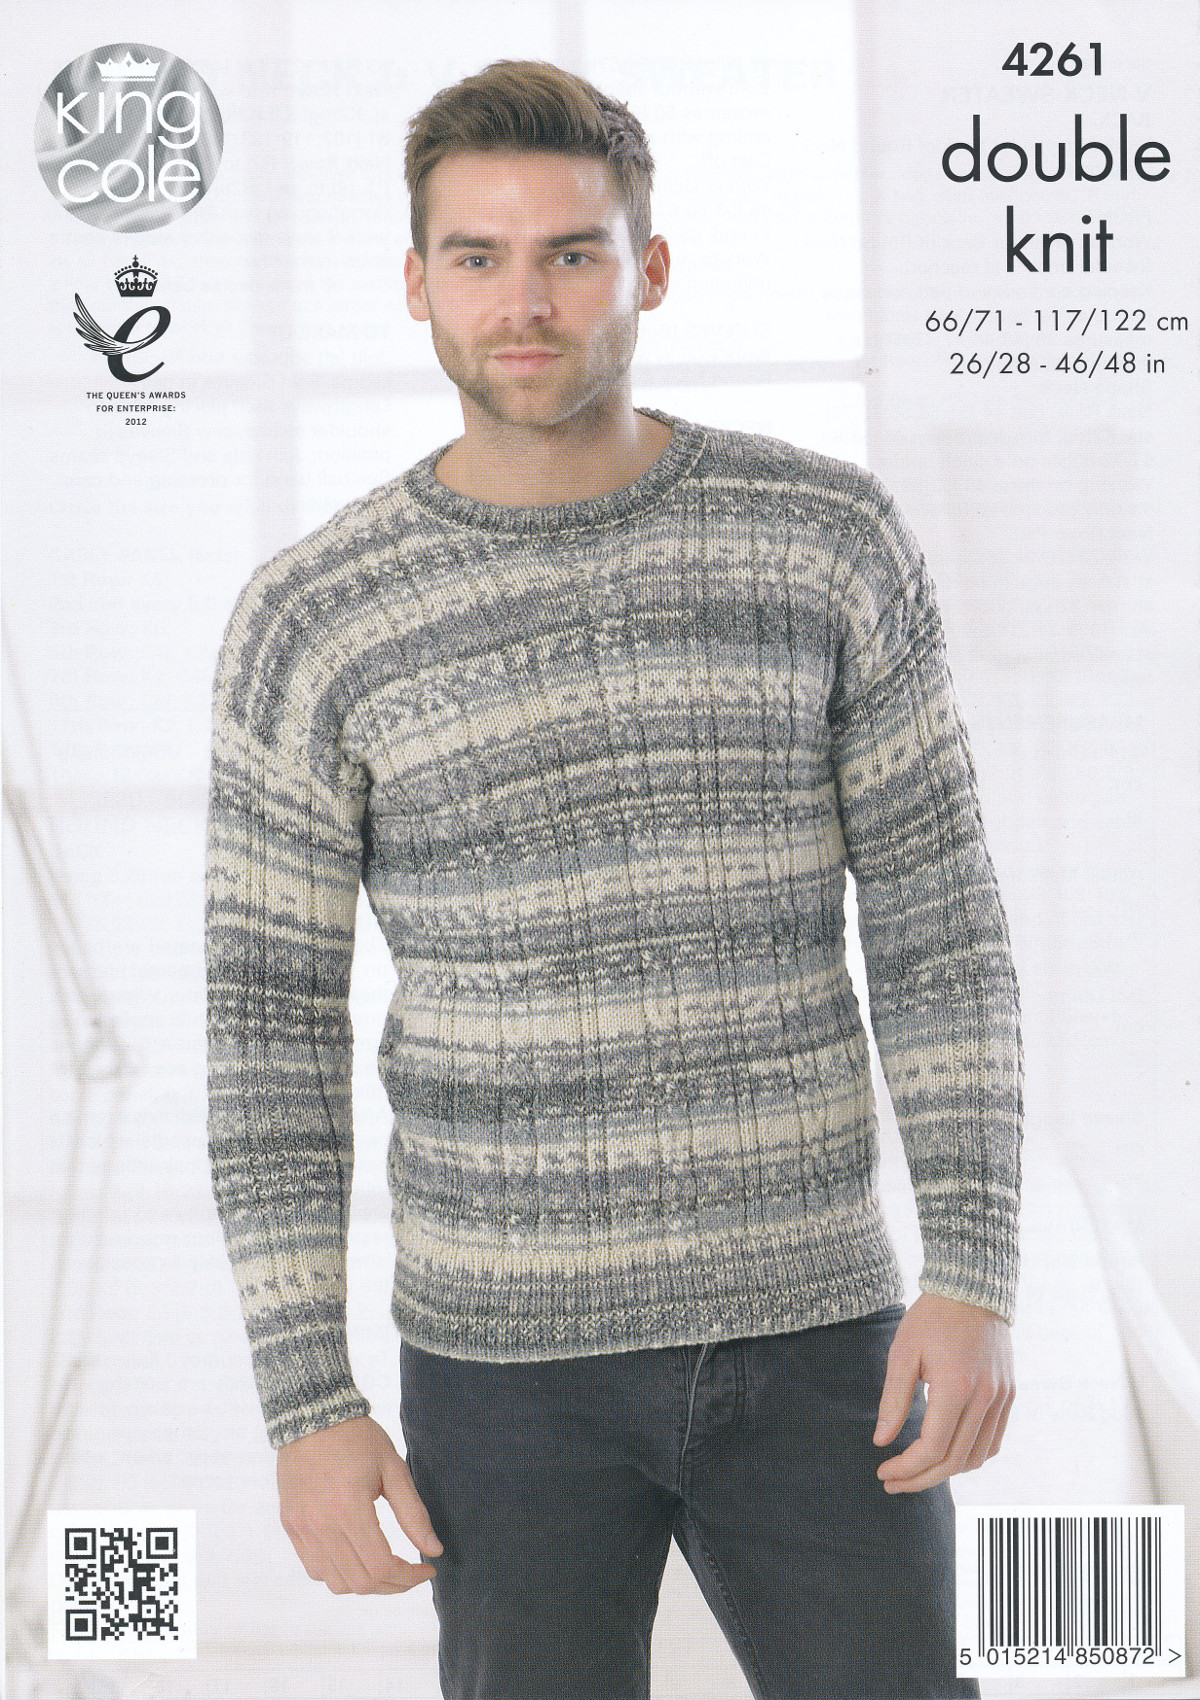 Mens double knit pattern king cole cable knit round v neck sweater the yarn illustrated is king cole drifter dk and is available to purchase on a separate listing bankloansurffo Image collections